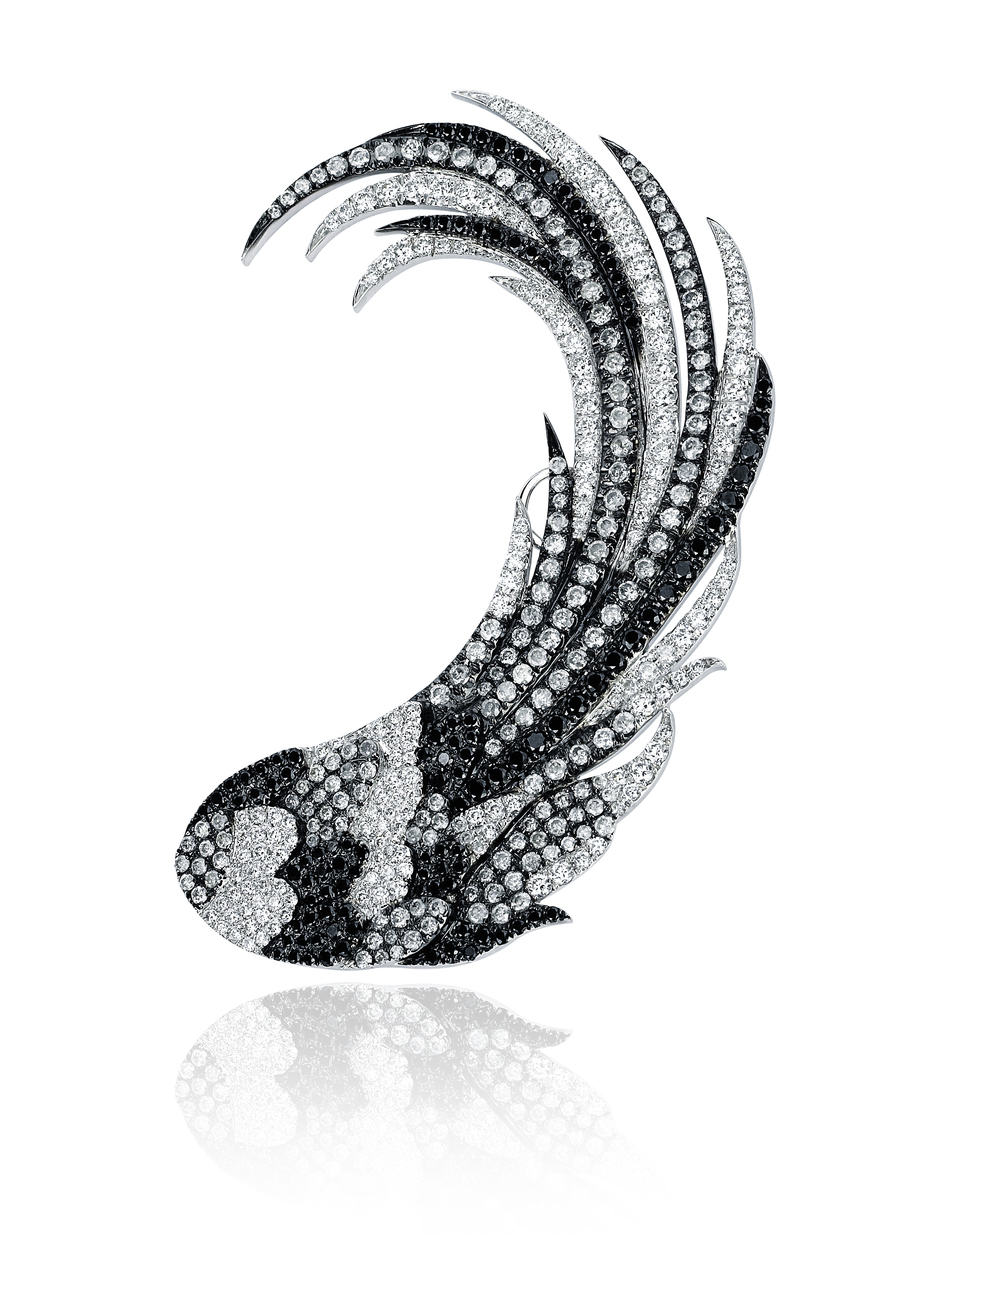 Colette ear cuff in white and black diamonds, price upon request, available at Colette Jewelry.